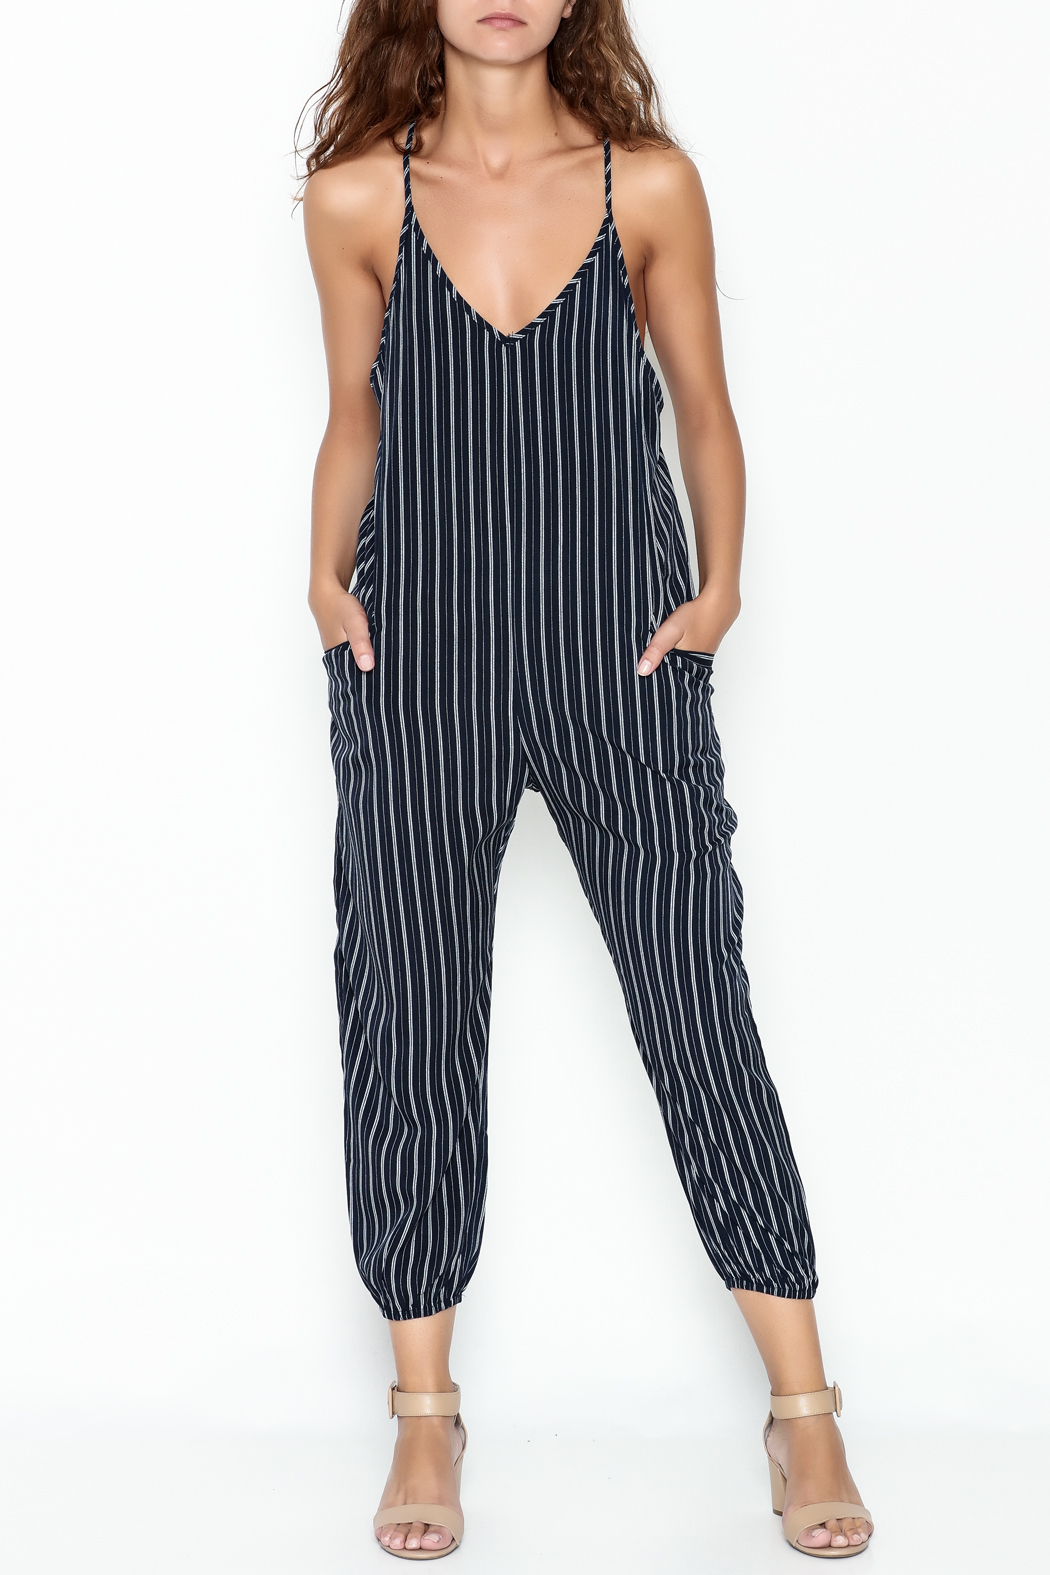 cfac967677 dress forum Navy Striped Jumpsuit from New York by Dor L Dor ...